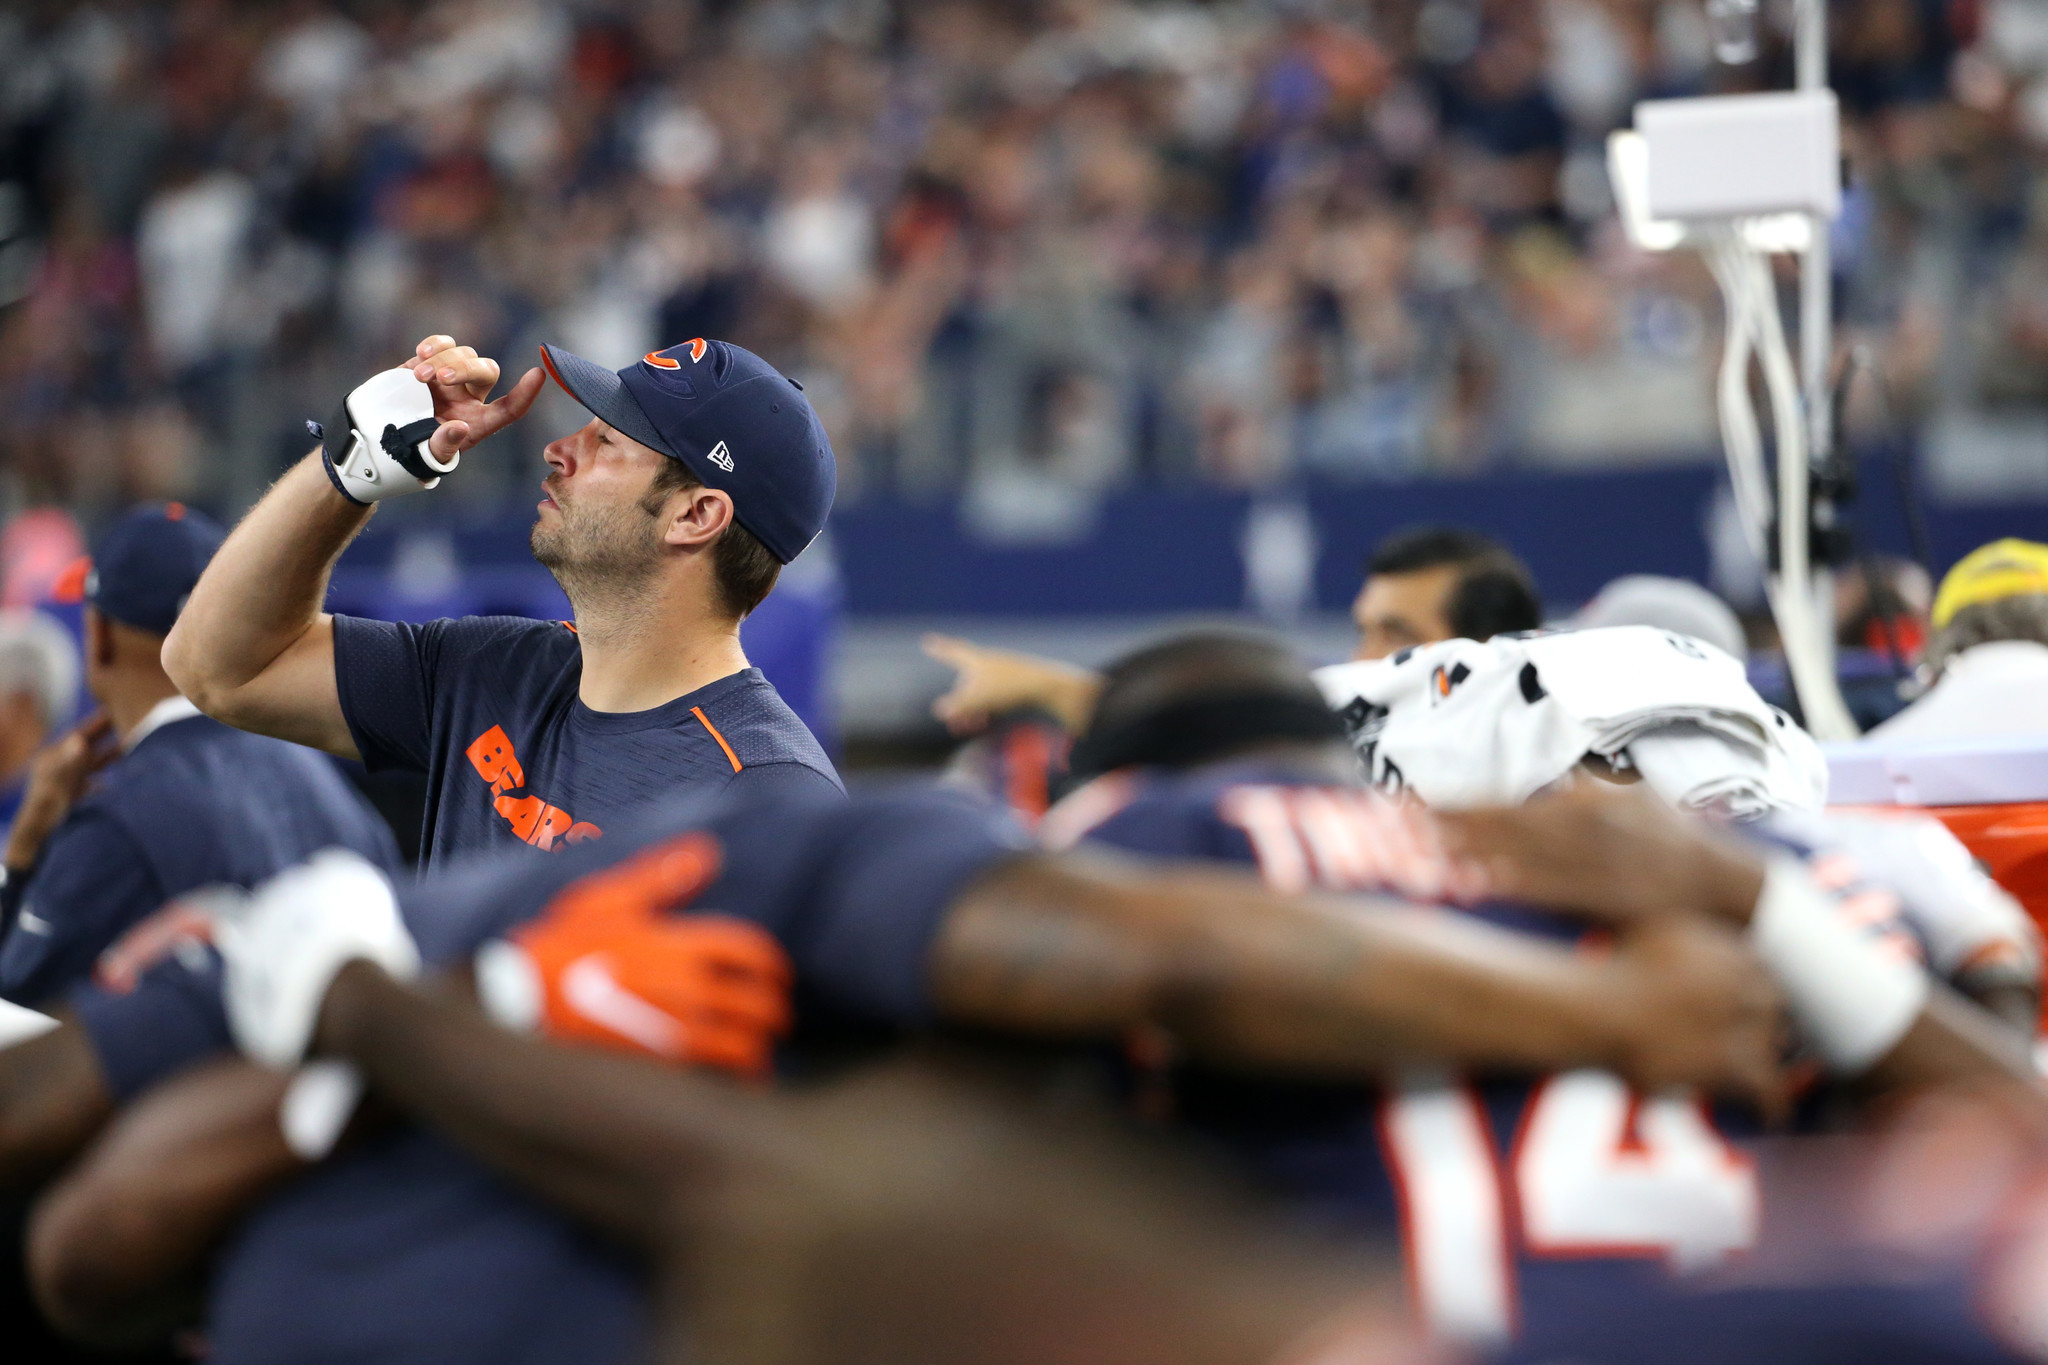 Ct-what-we-learned-jay-cutler-spt-0929-20160928